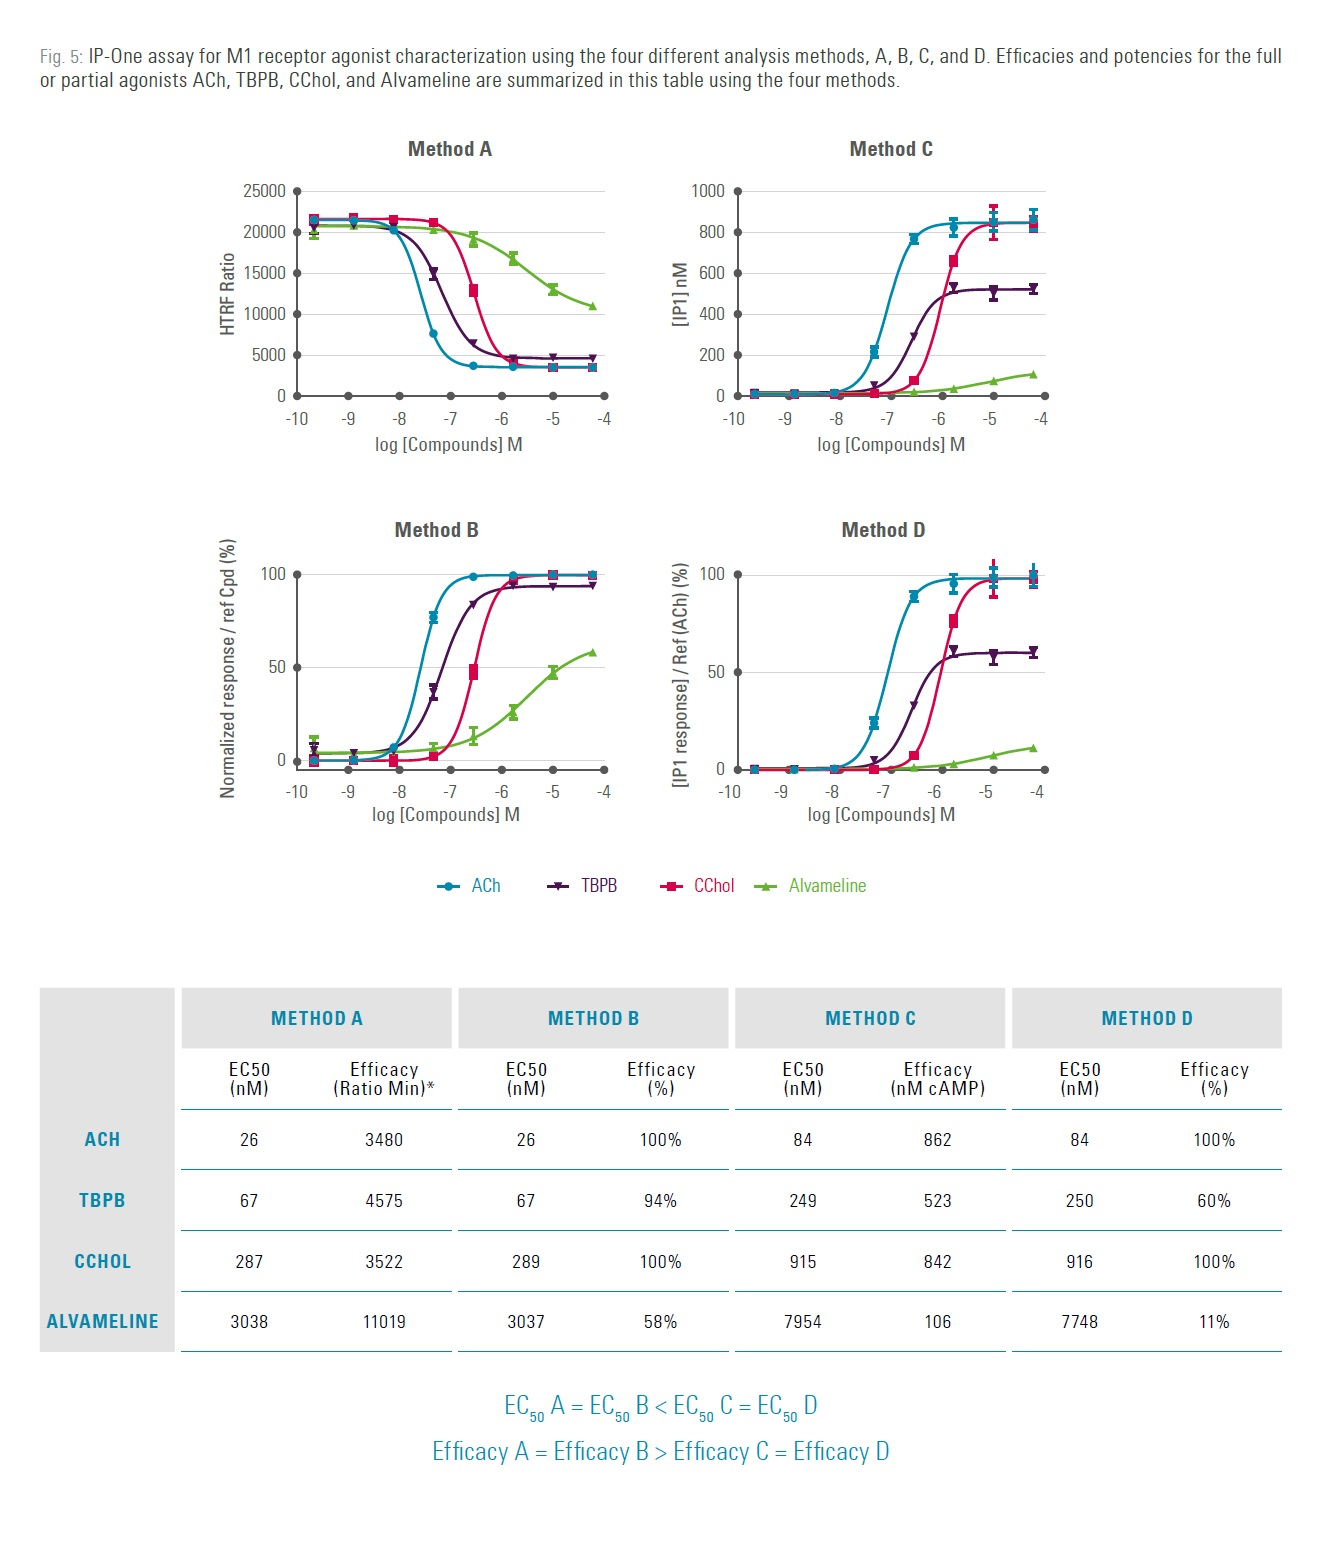 Figure 5 IP-One assay for M1 receptor agonist characterization using the four different analsis methods